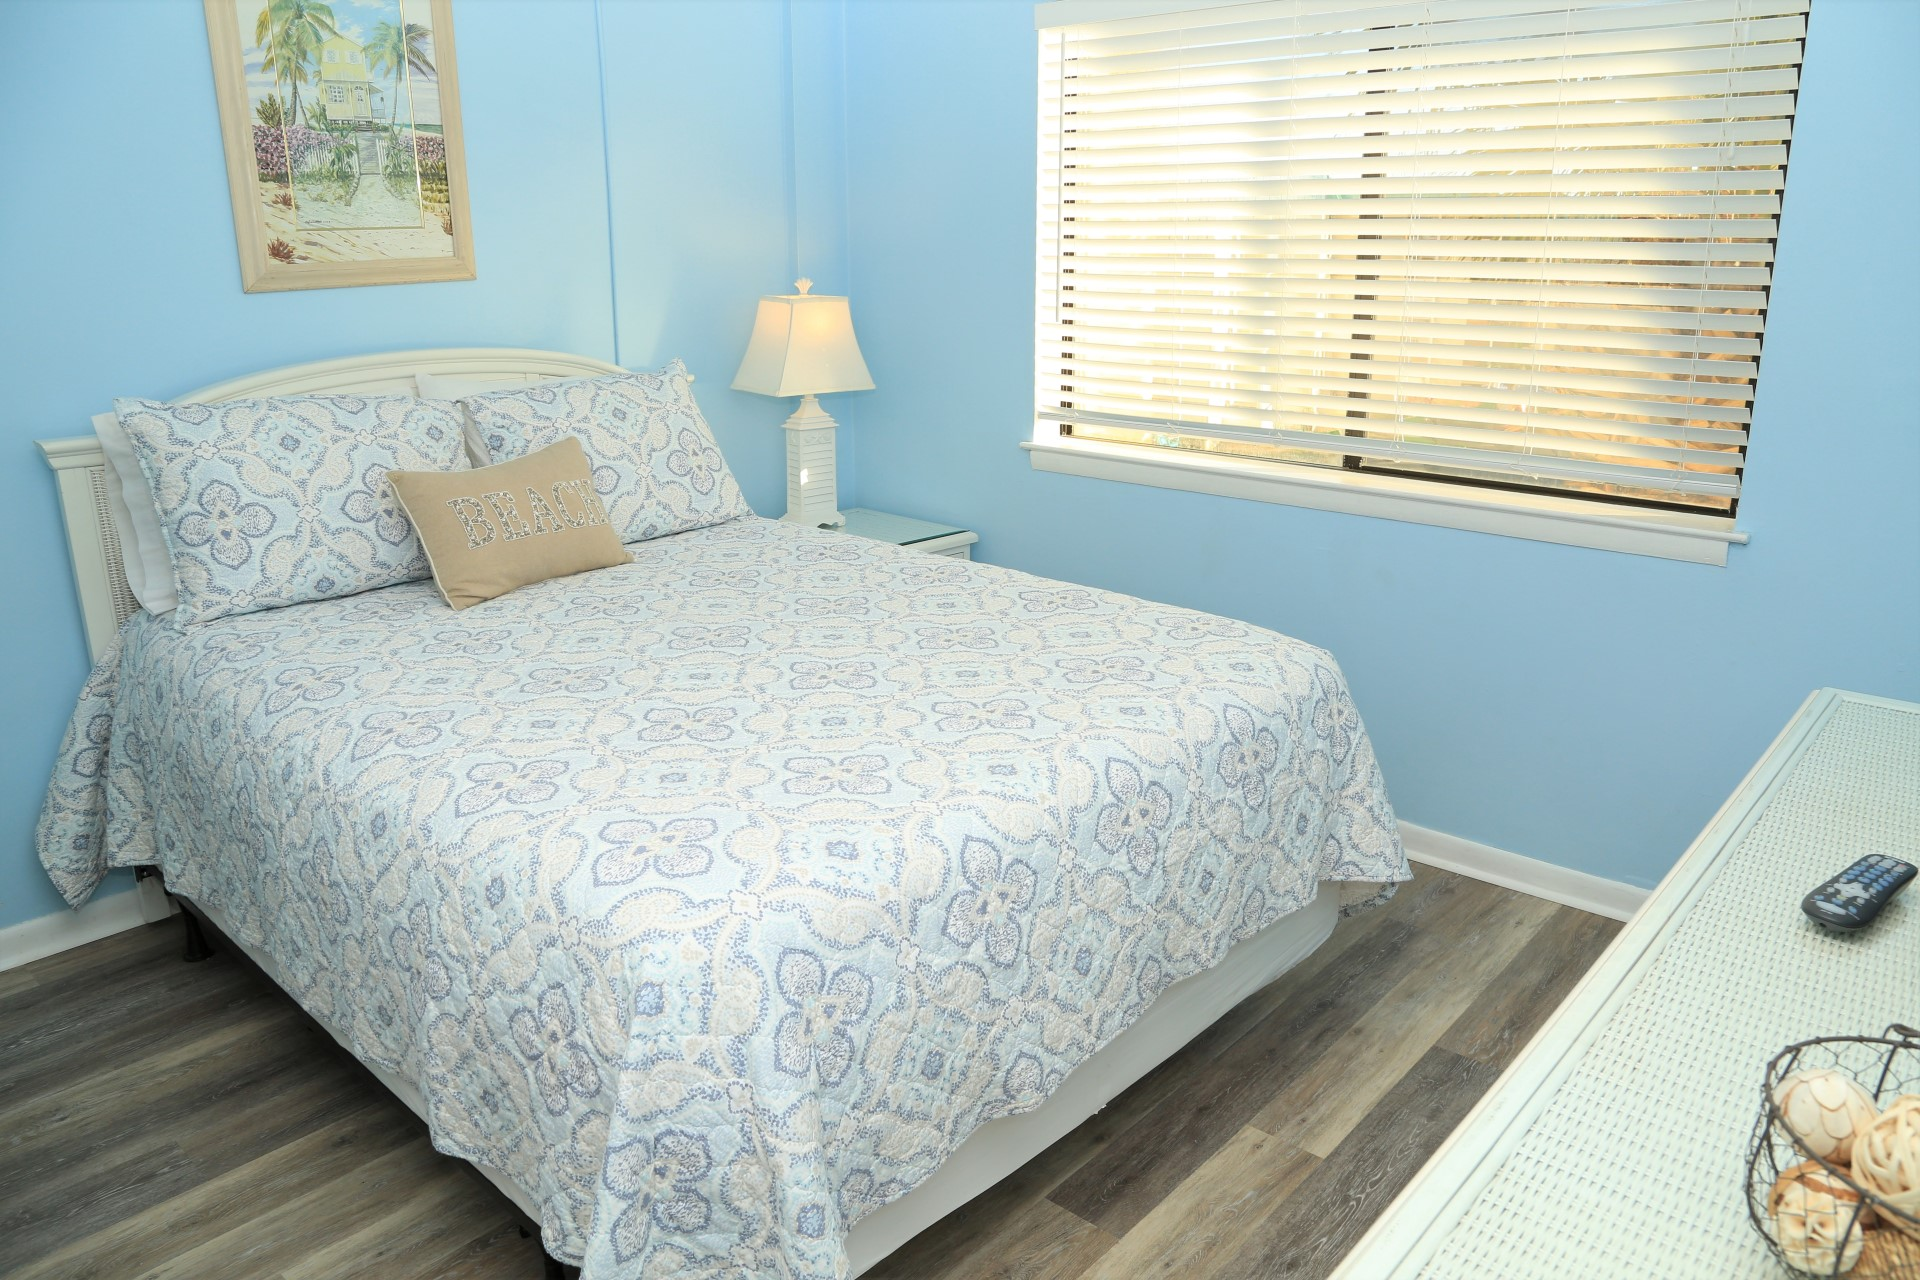 The master bedroom with upgraded Queen-size mattress to ensu